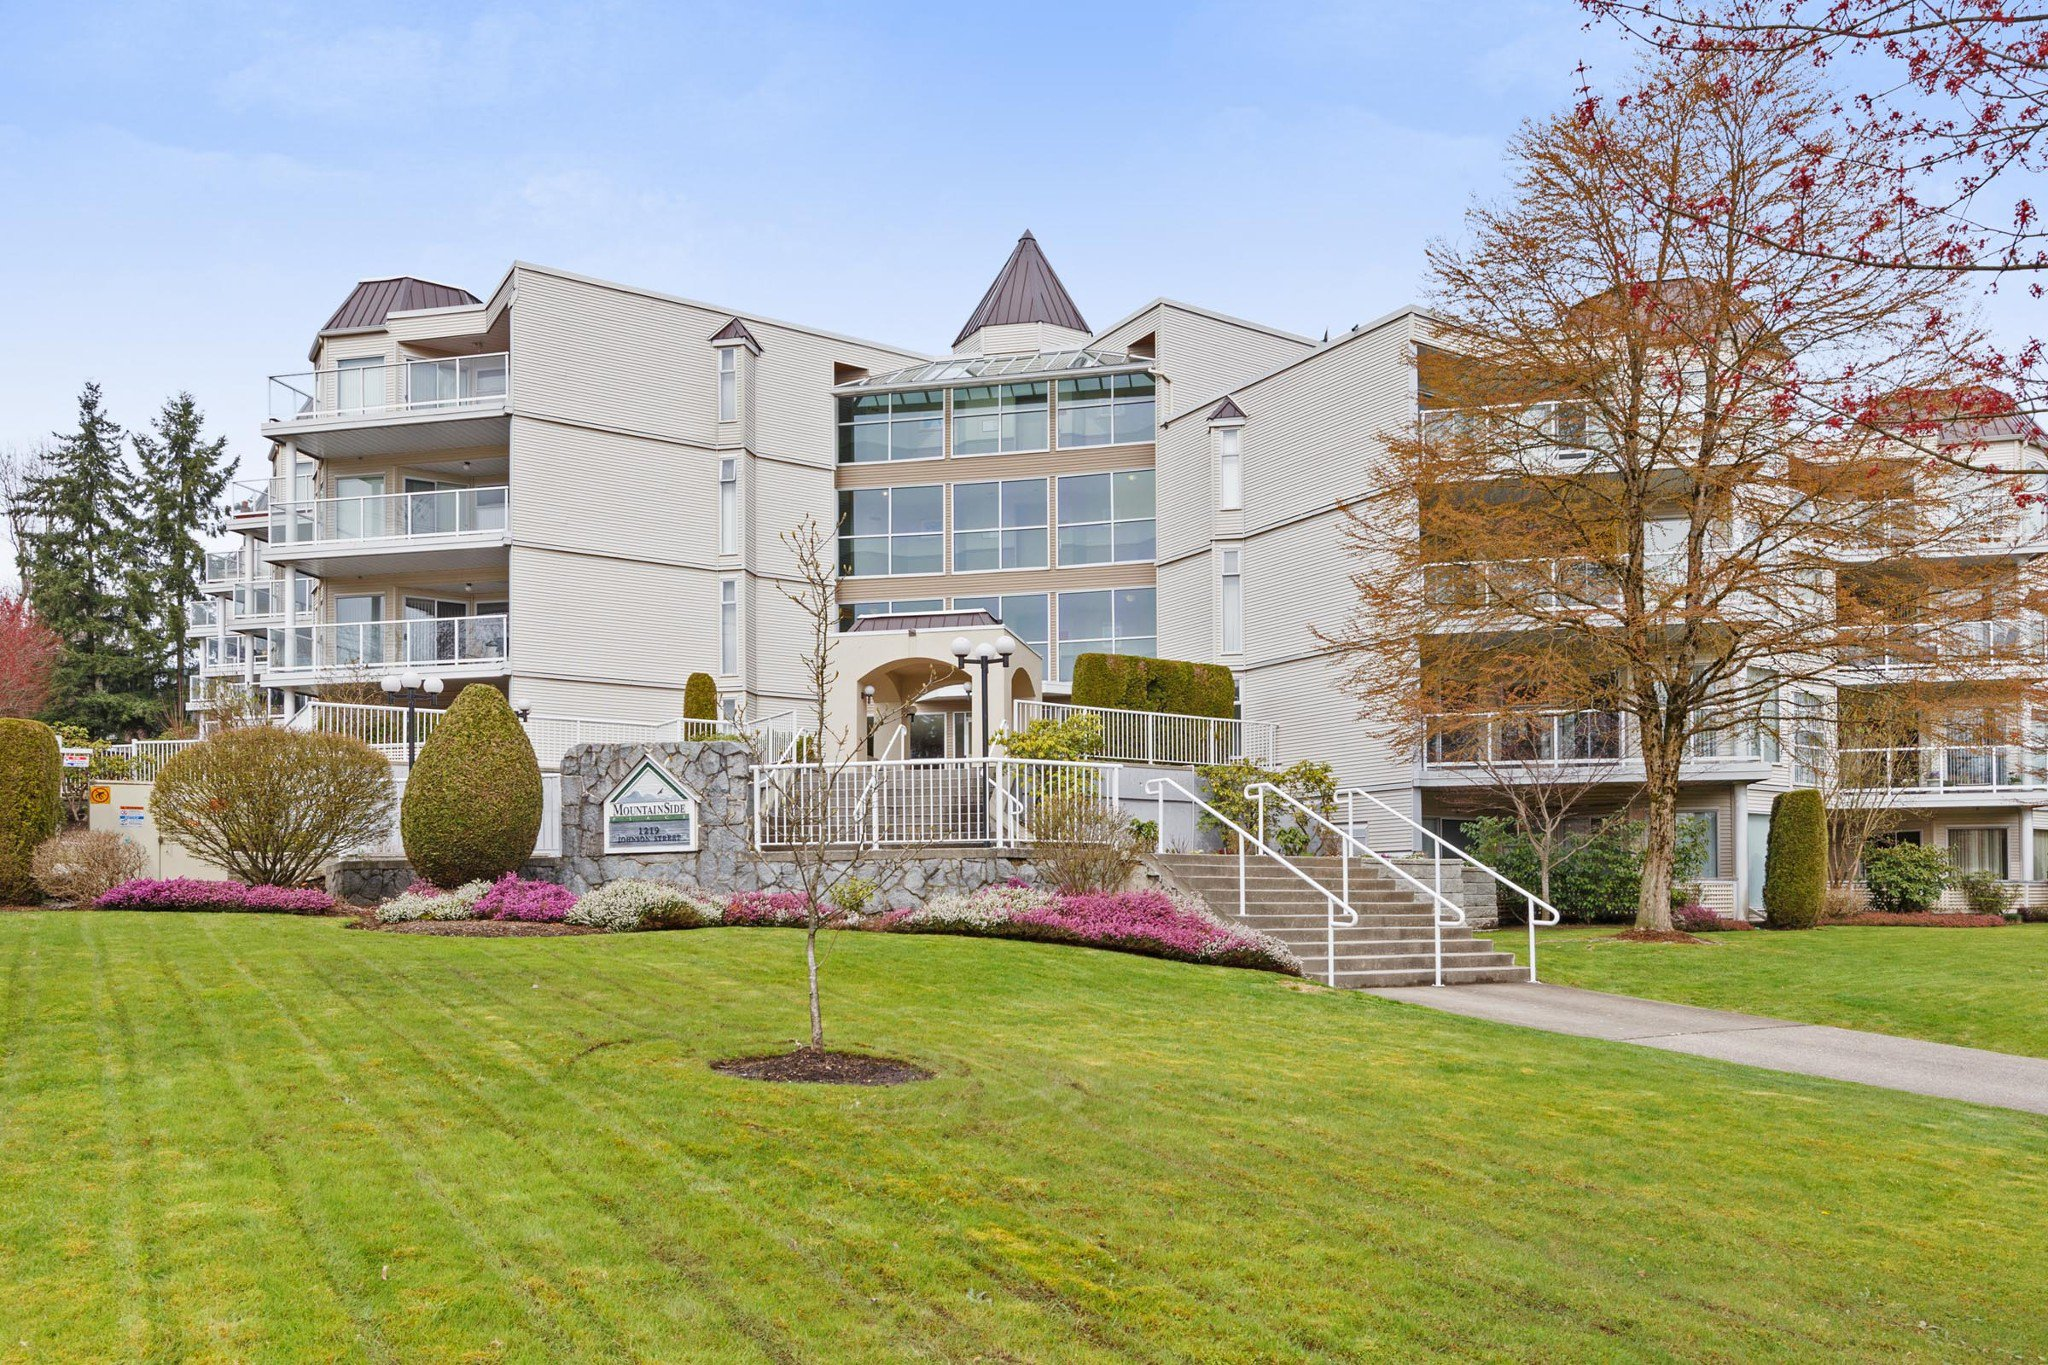 """Main Photo: 201 1219 JOHNSON Street in Coquitlam: Canyon Springs Condo for sale in """"MOUNTAINSIDE PLACE"""" : MLS®# R2419625"""